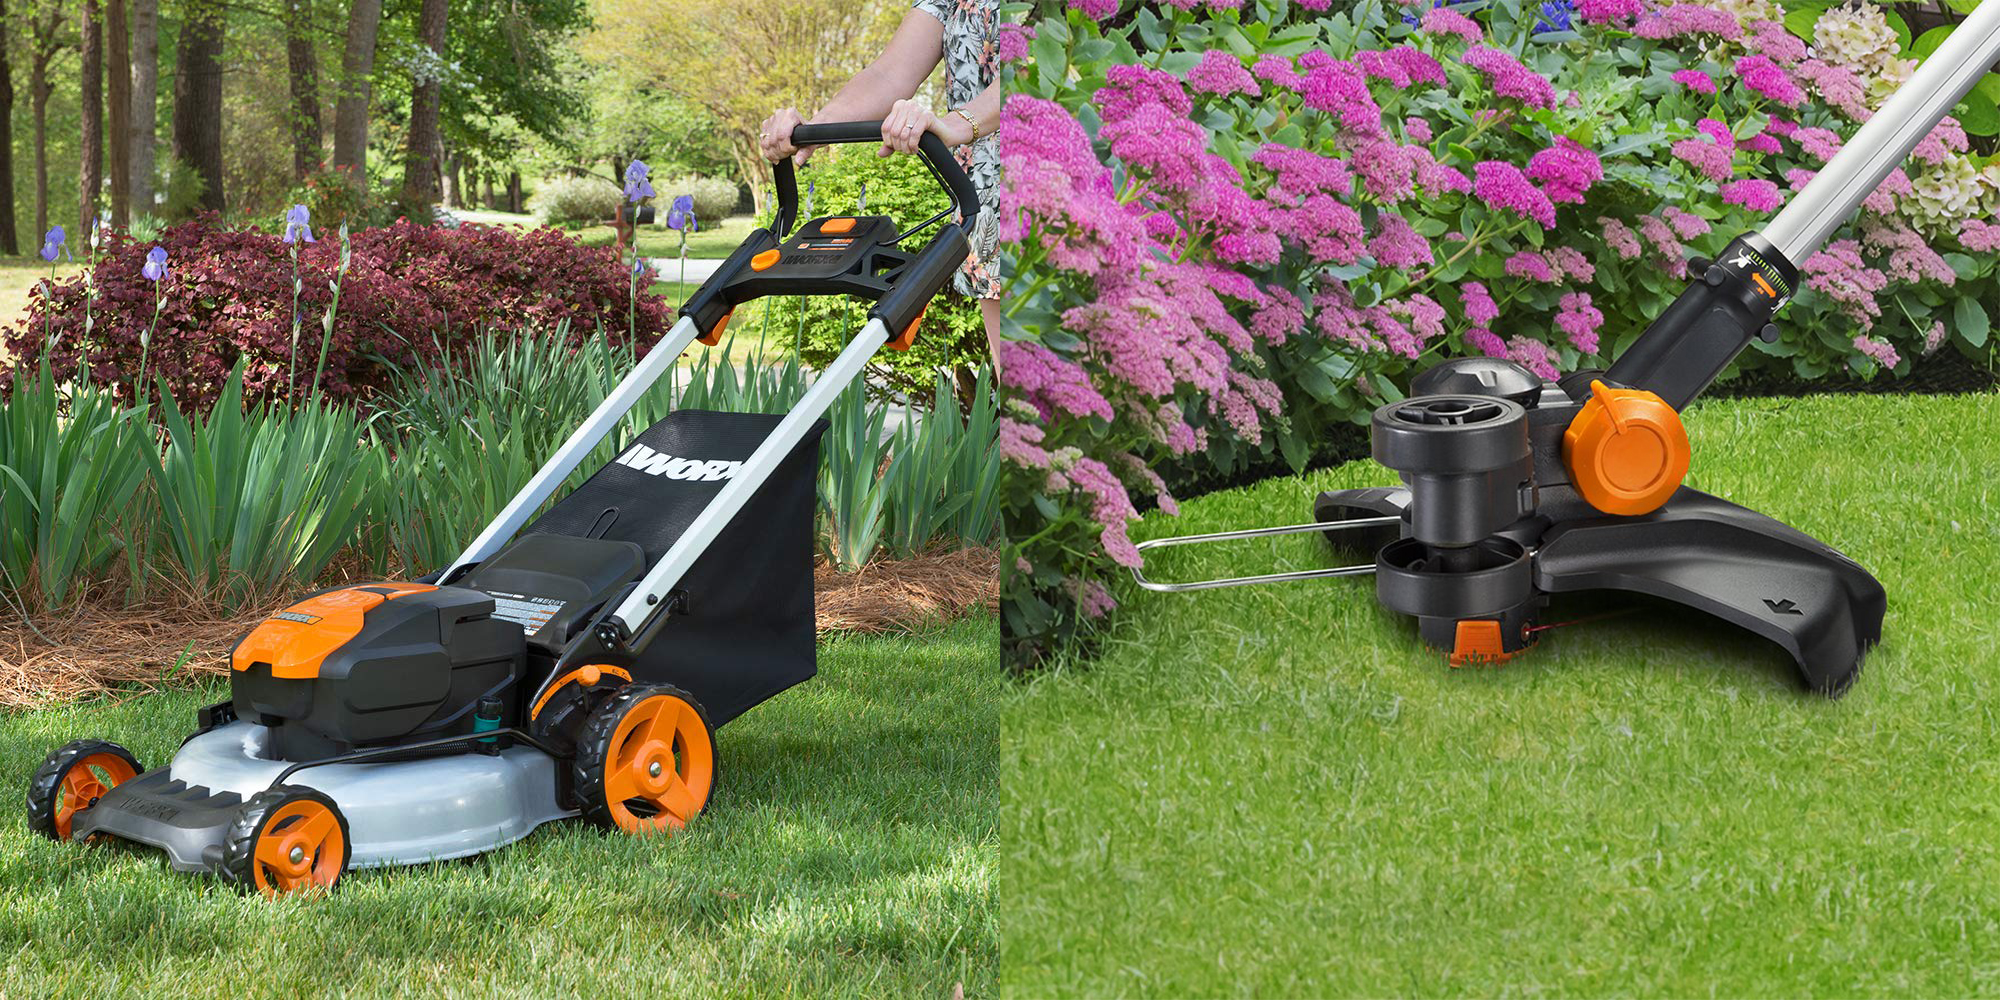 WORX electric outdoor tools 20% off highlight today's best Green Deals